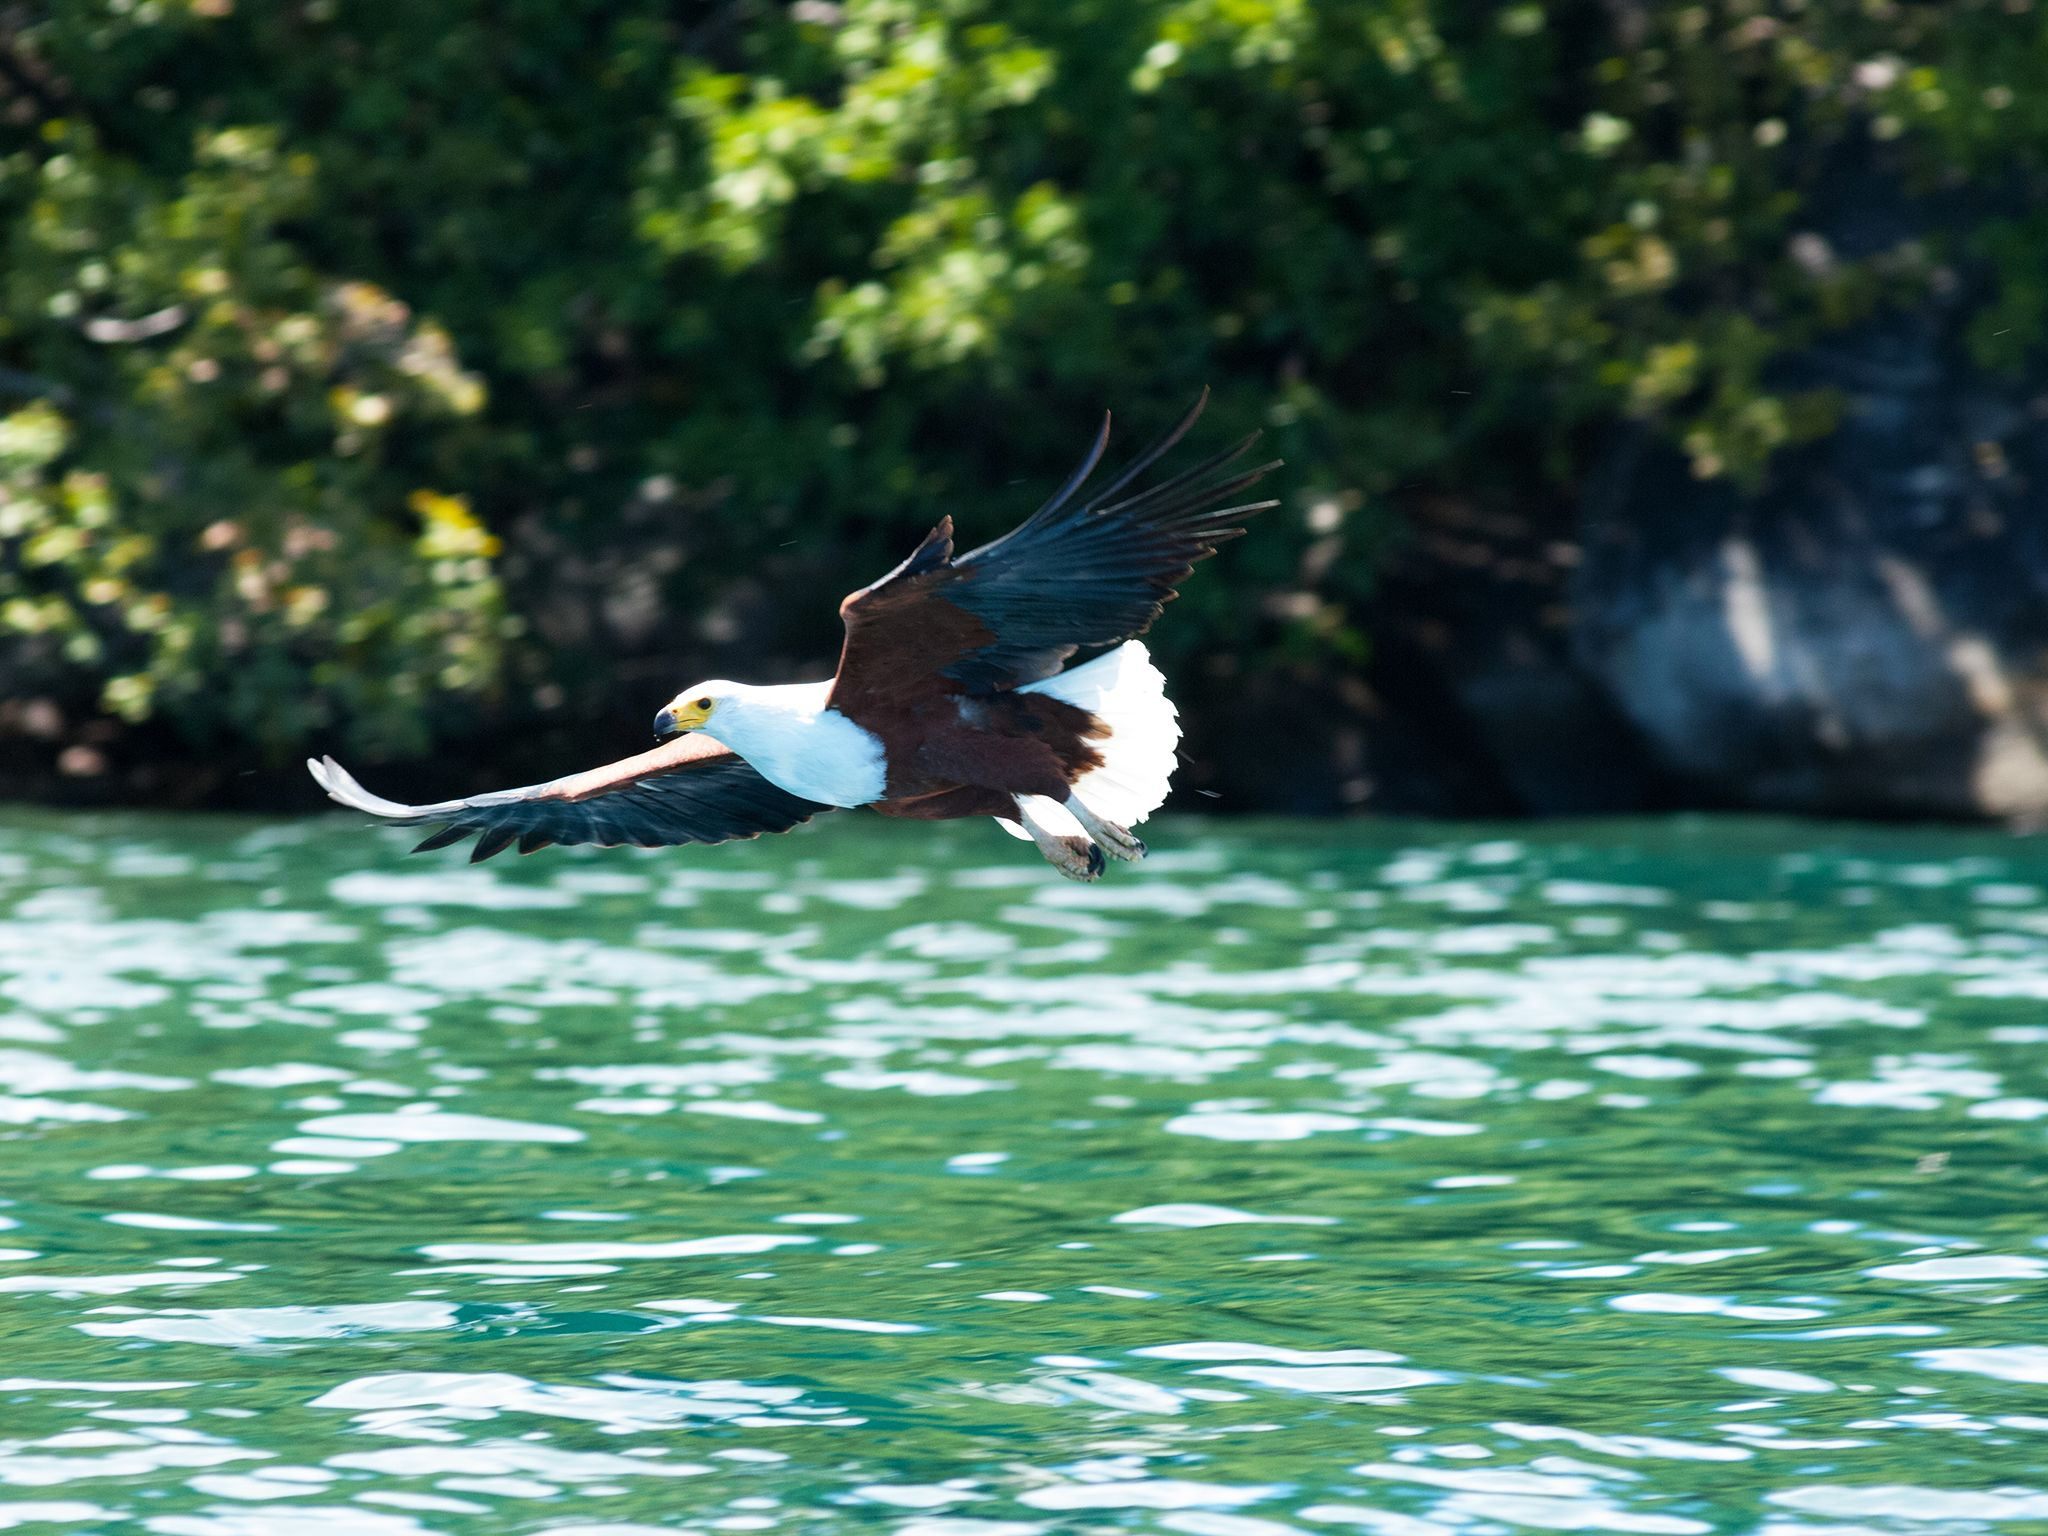 Malawi: A Fish Eagle flies over water in Malawi. This image is from Predator Fails. [Photo of the day - January 2015]